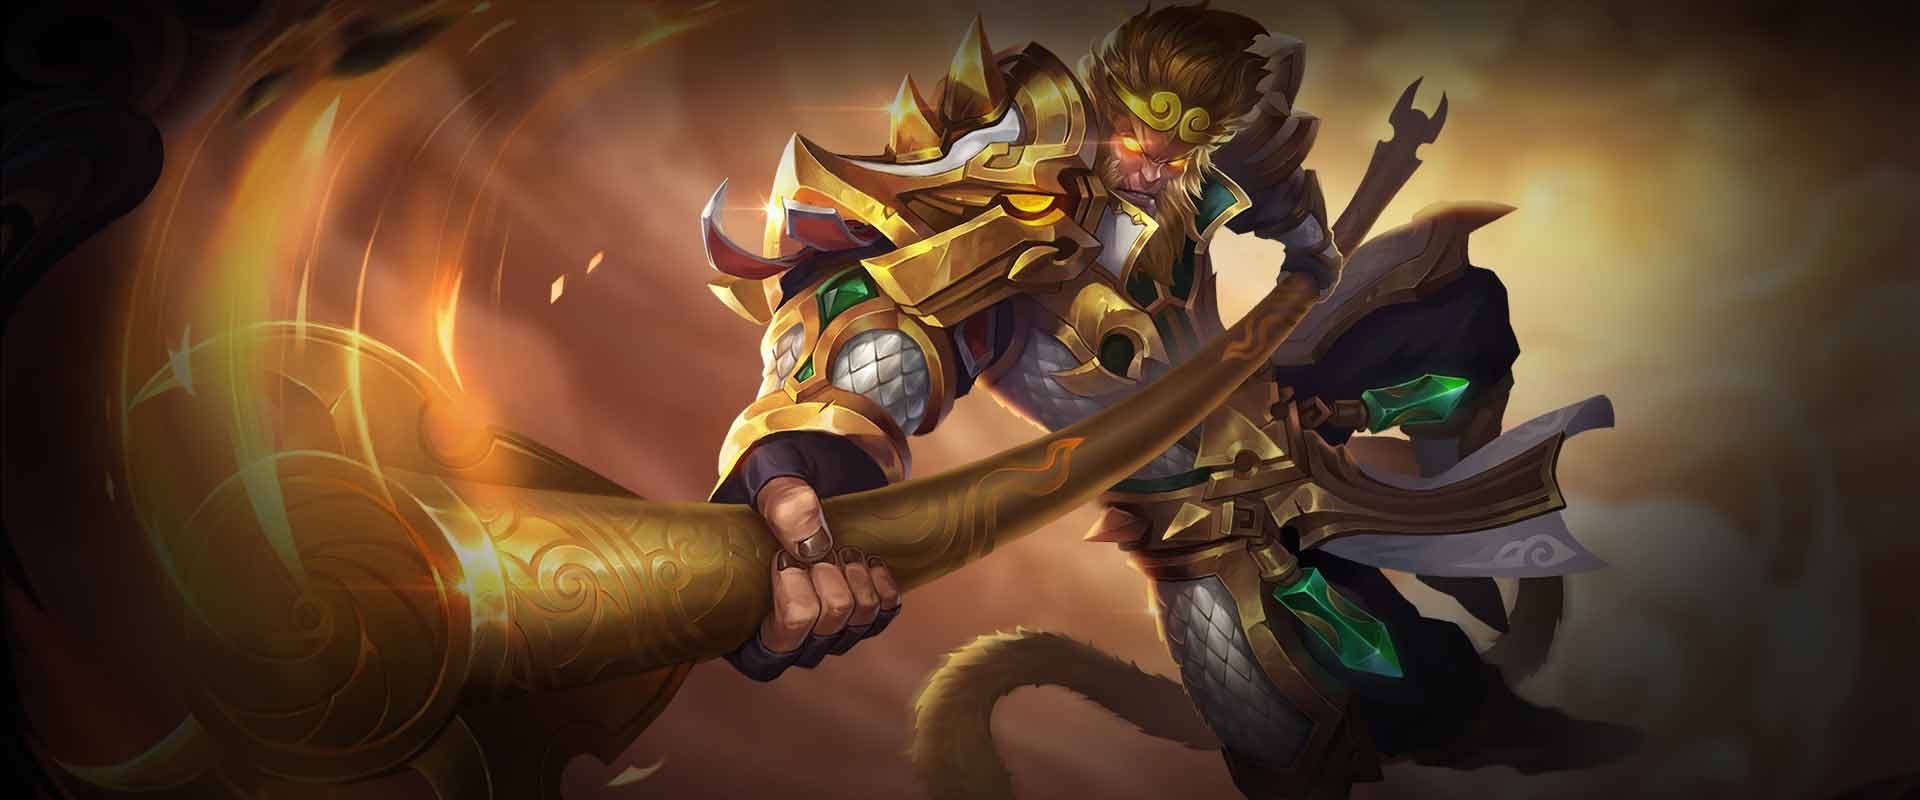 Wukong Assassin hero in Arena of Valor